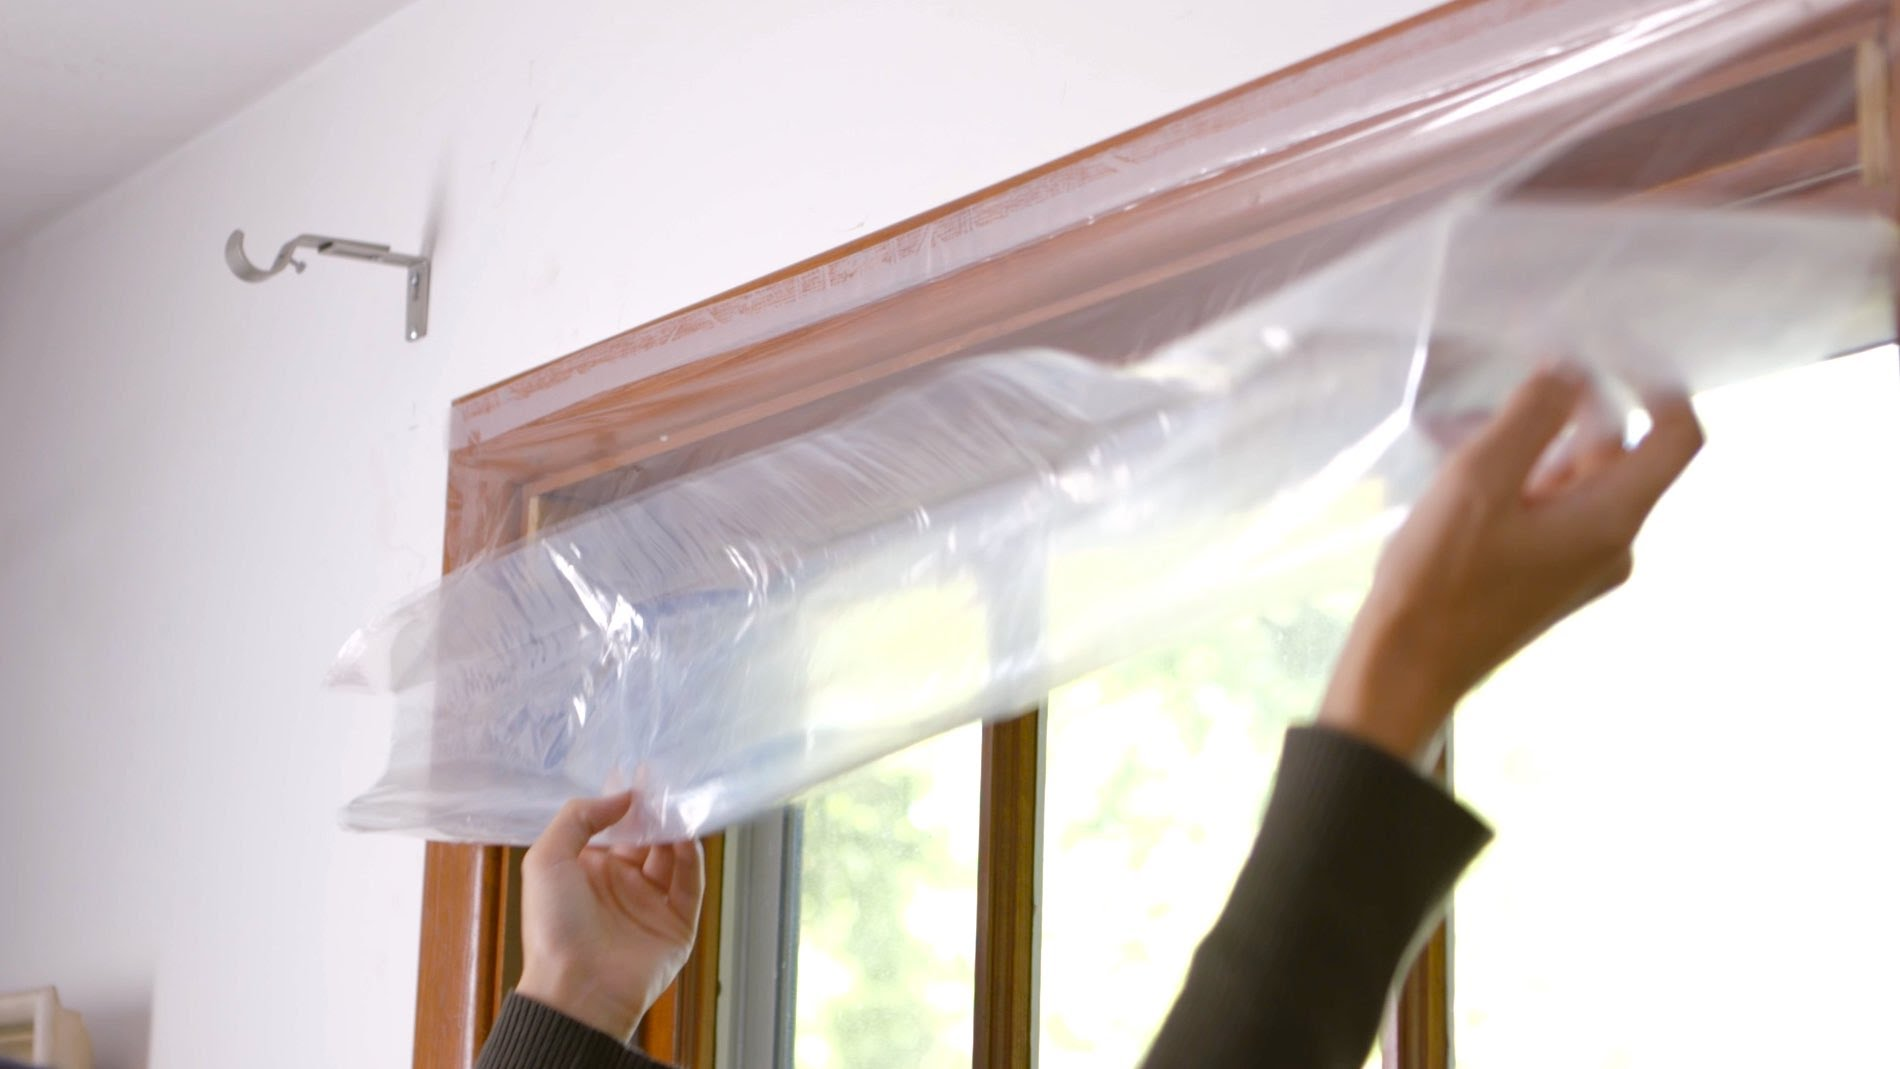 Insulate Your Home To Save Money Energy Stratagem - Window Plastic Insulation